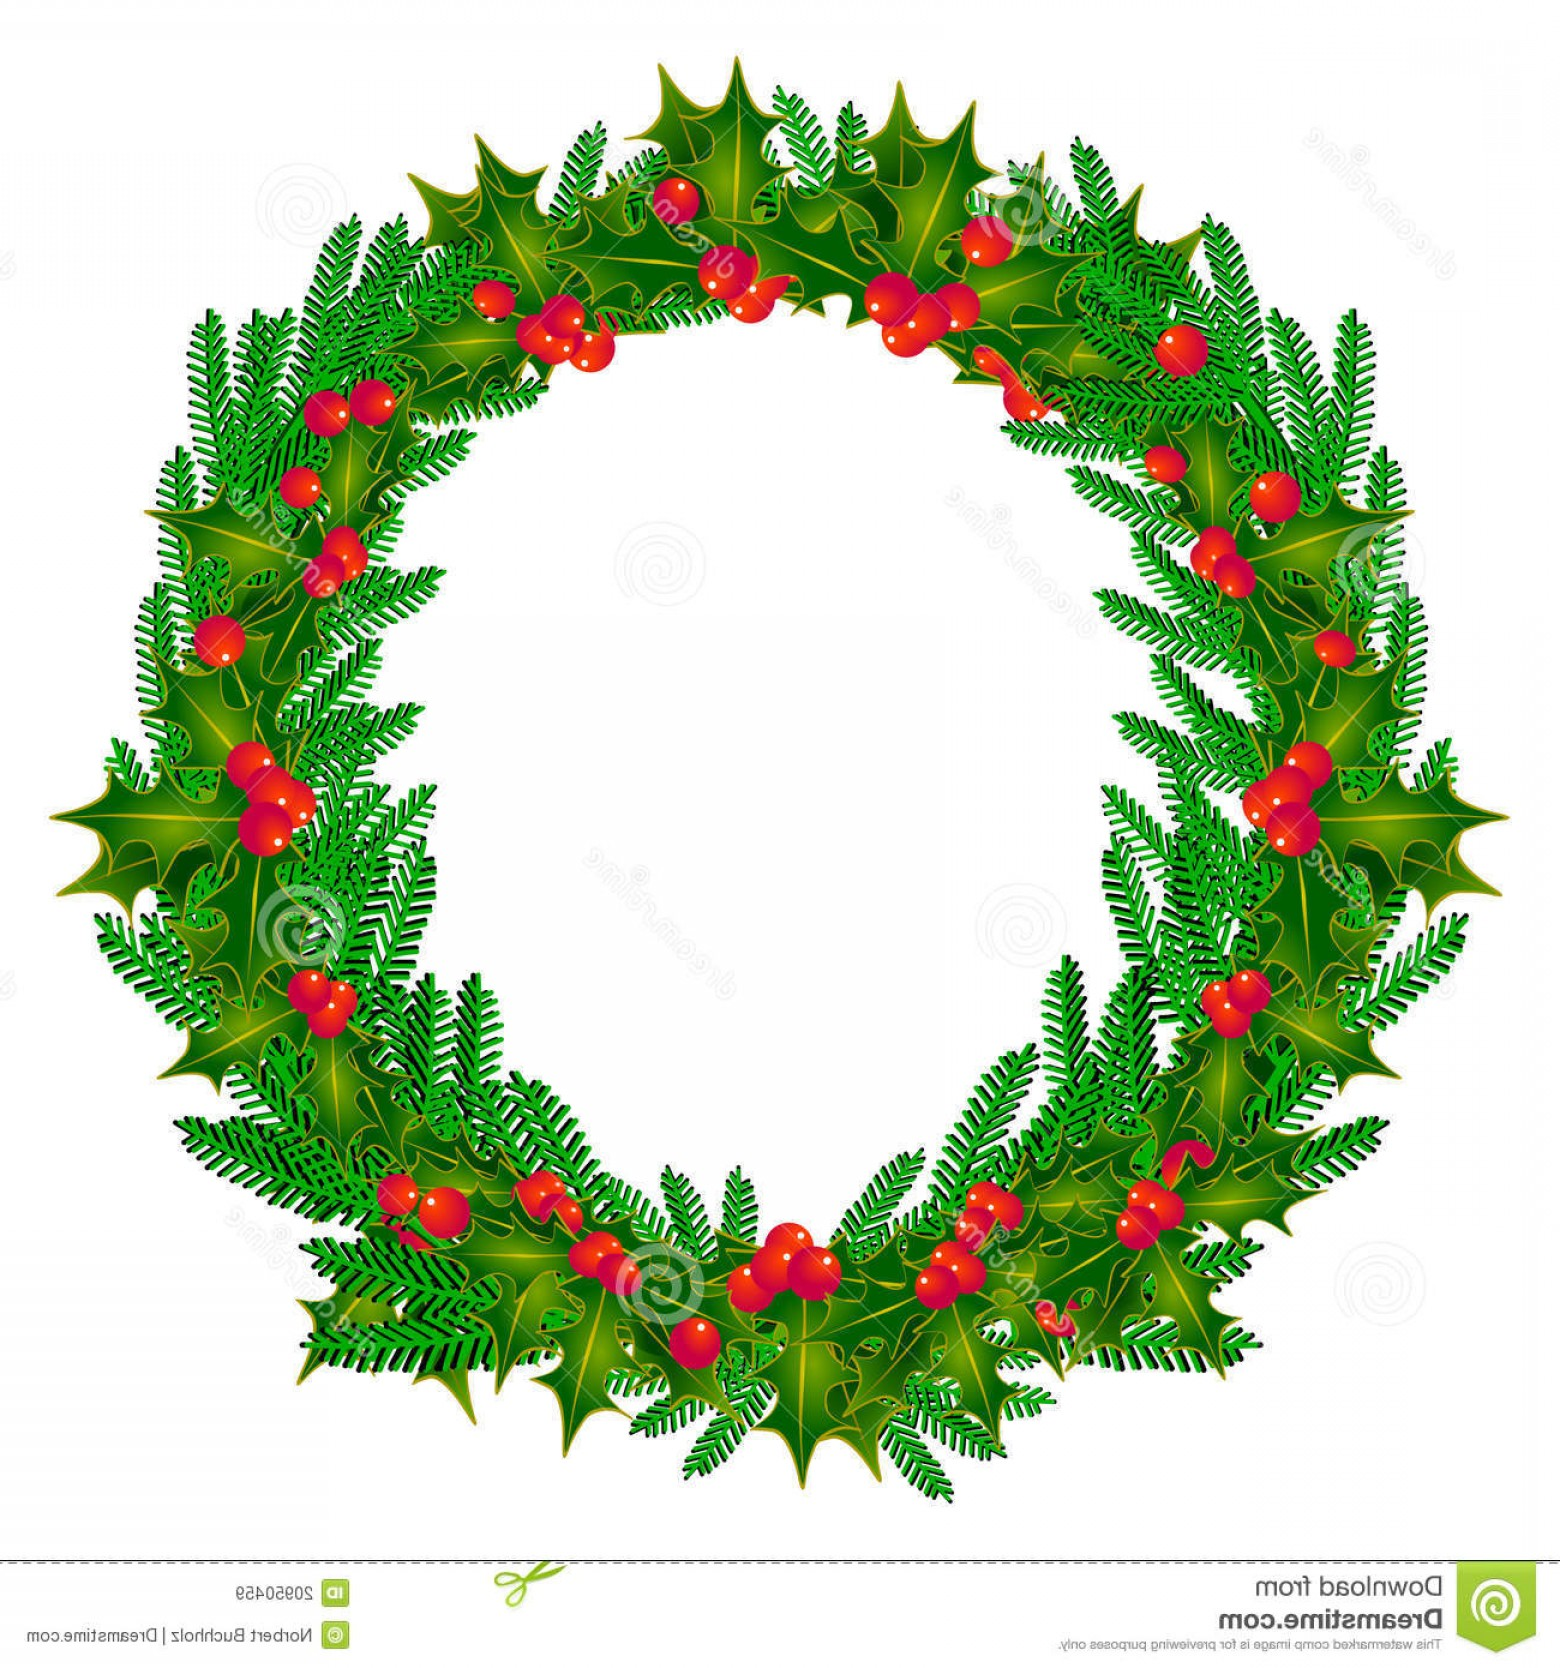 Advent Wreath Vector: Royalty Free Stock Images Decorative Advent Wreath Image